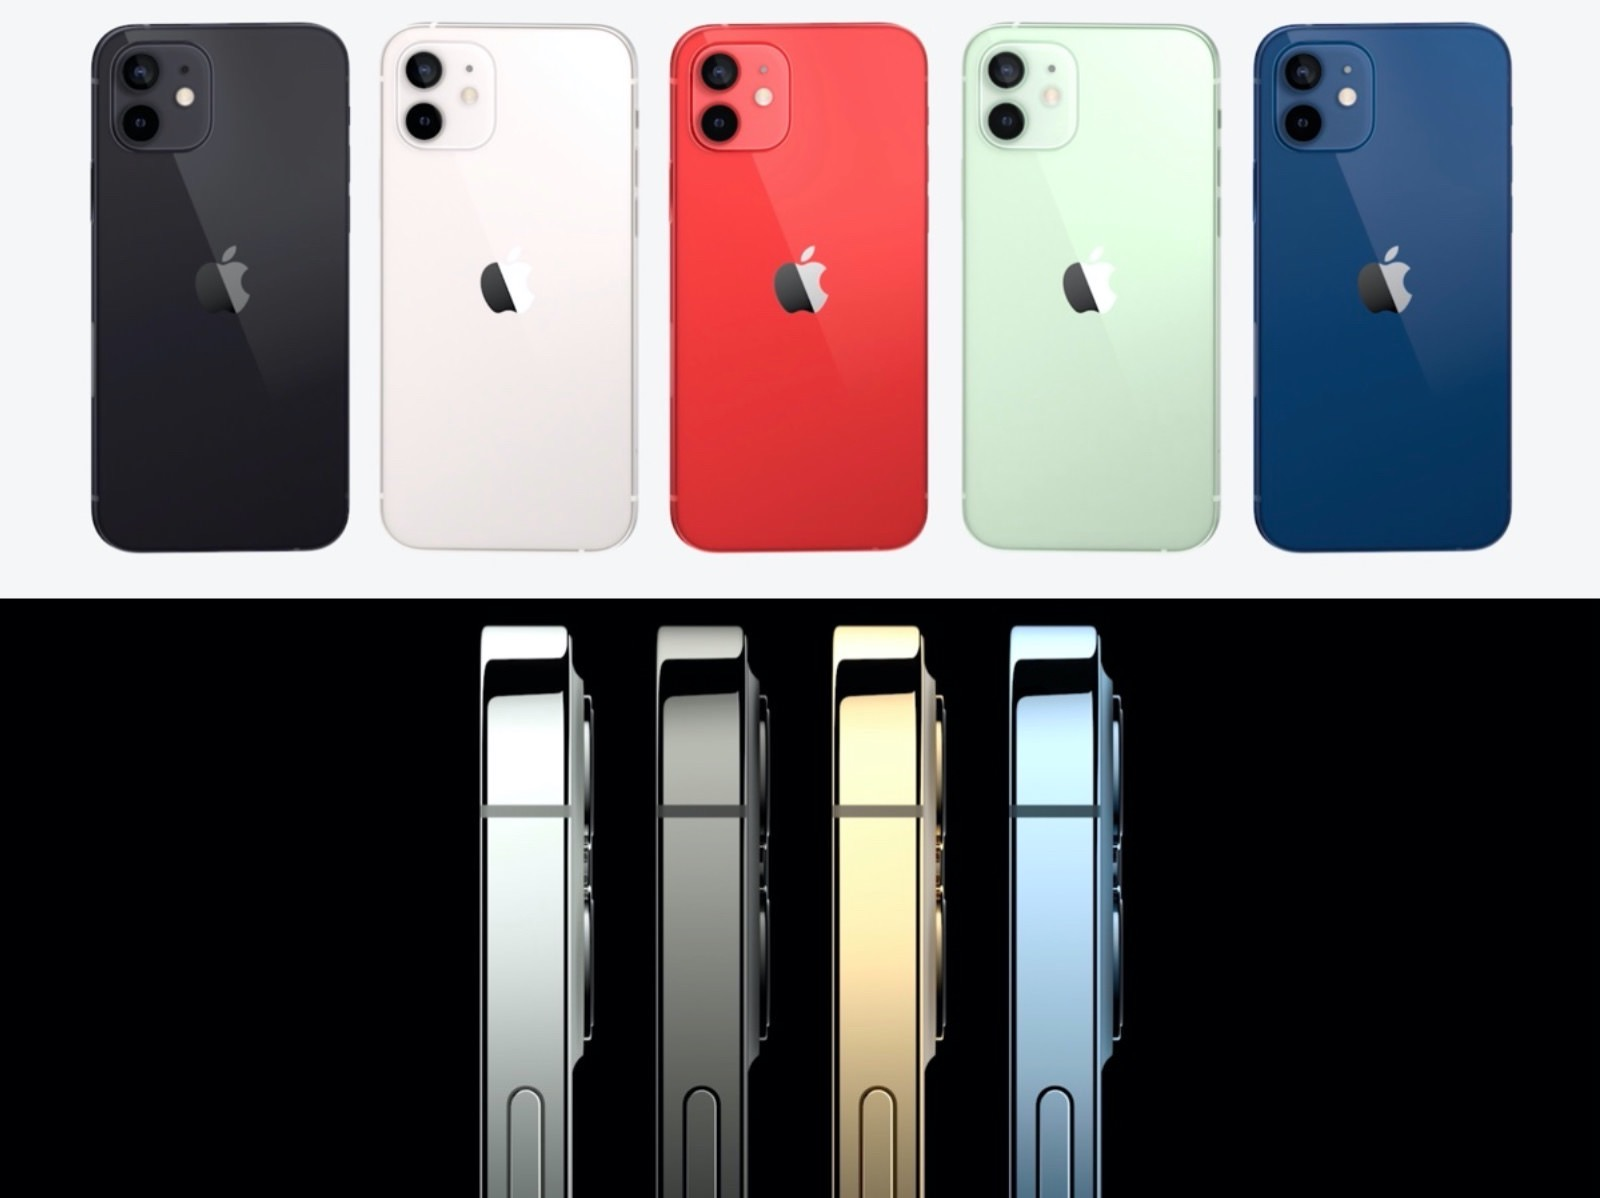 iphone-12-series-design.jpg